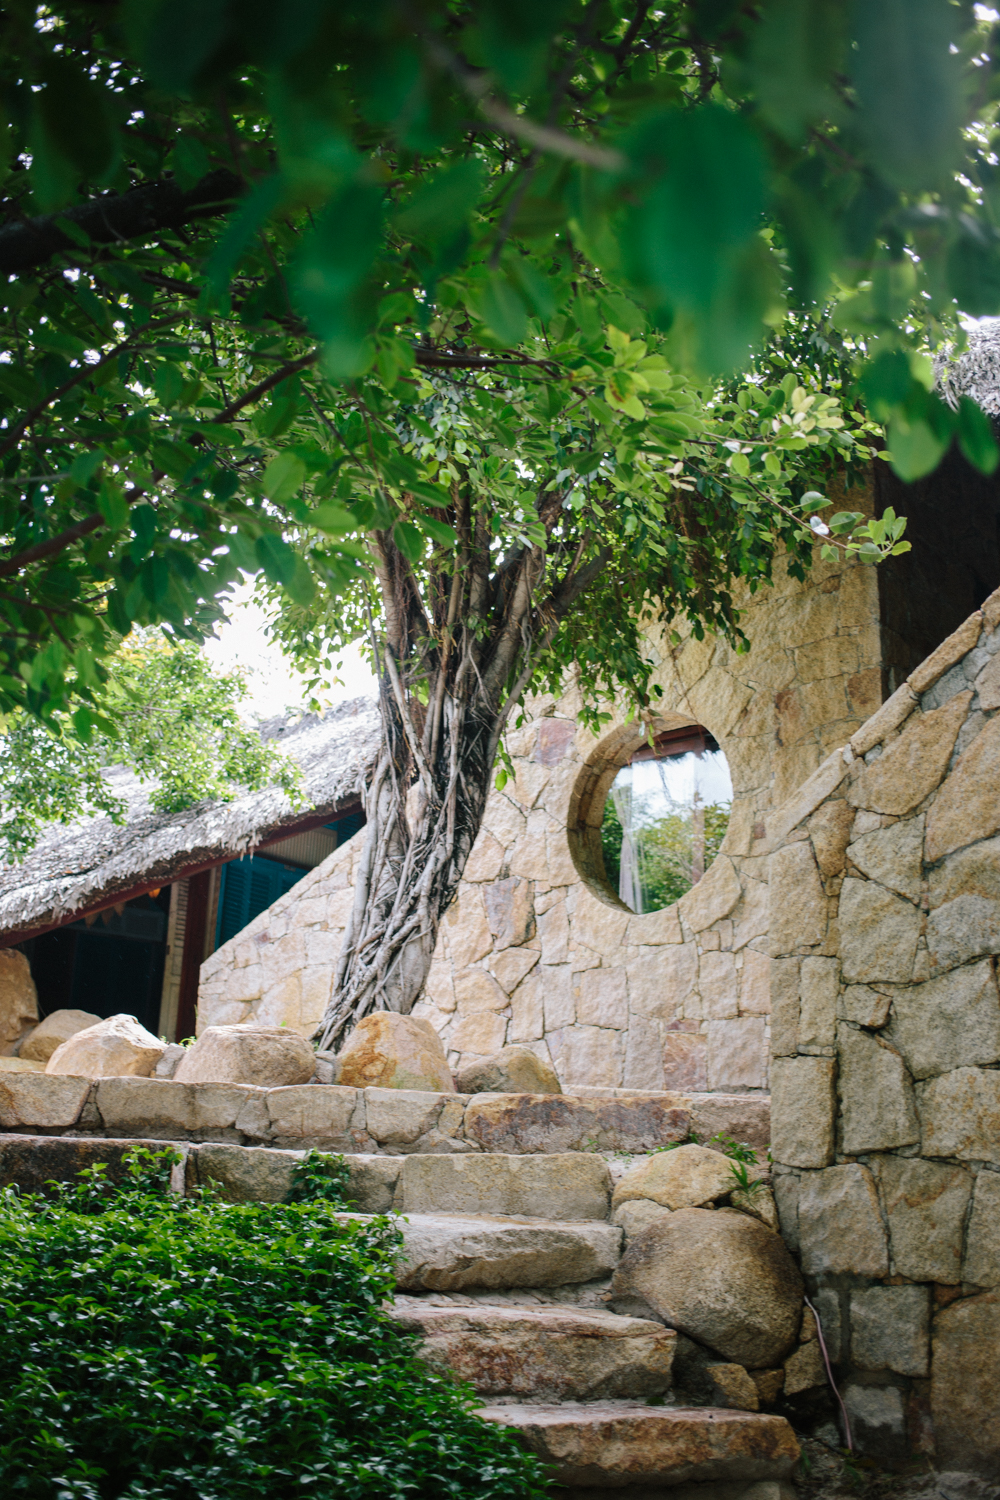 Each hut is built with locally quarried stone